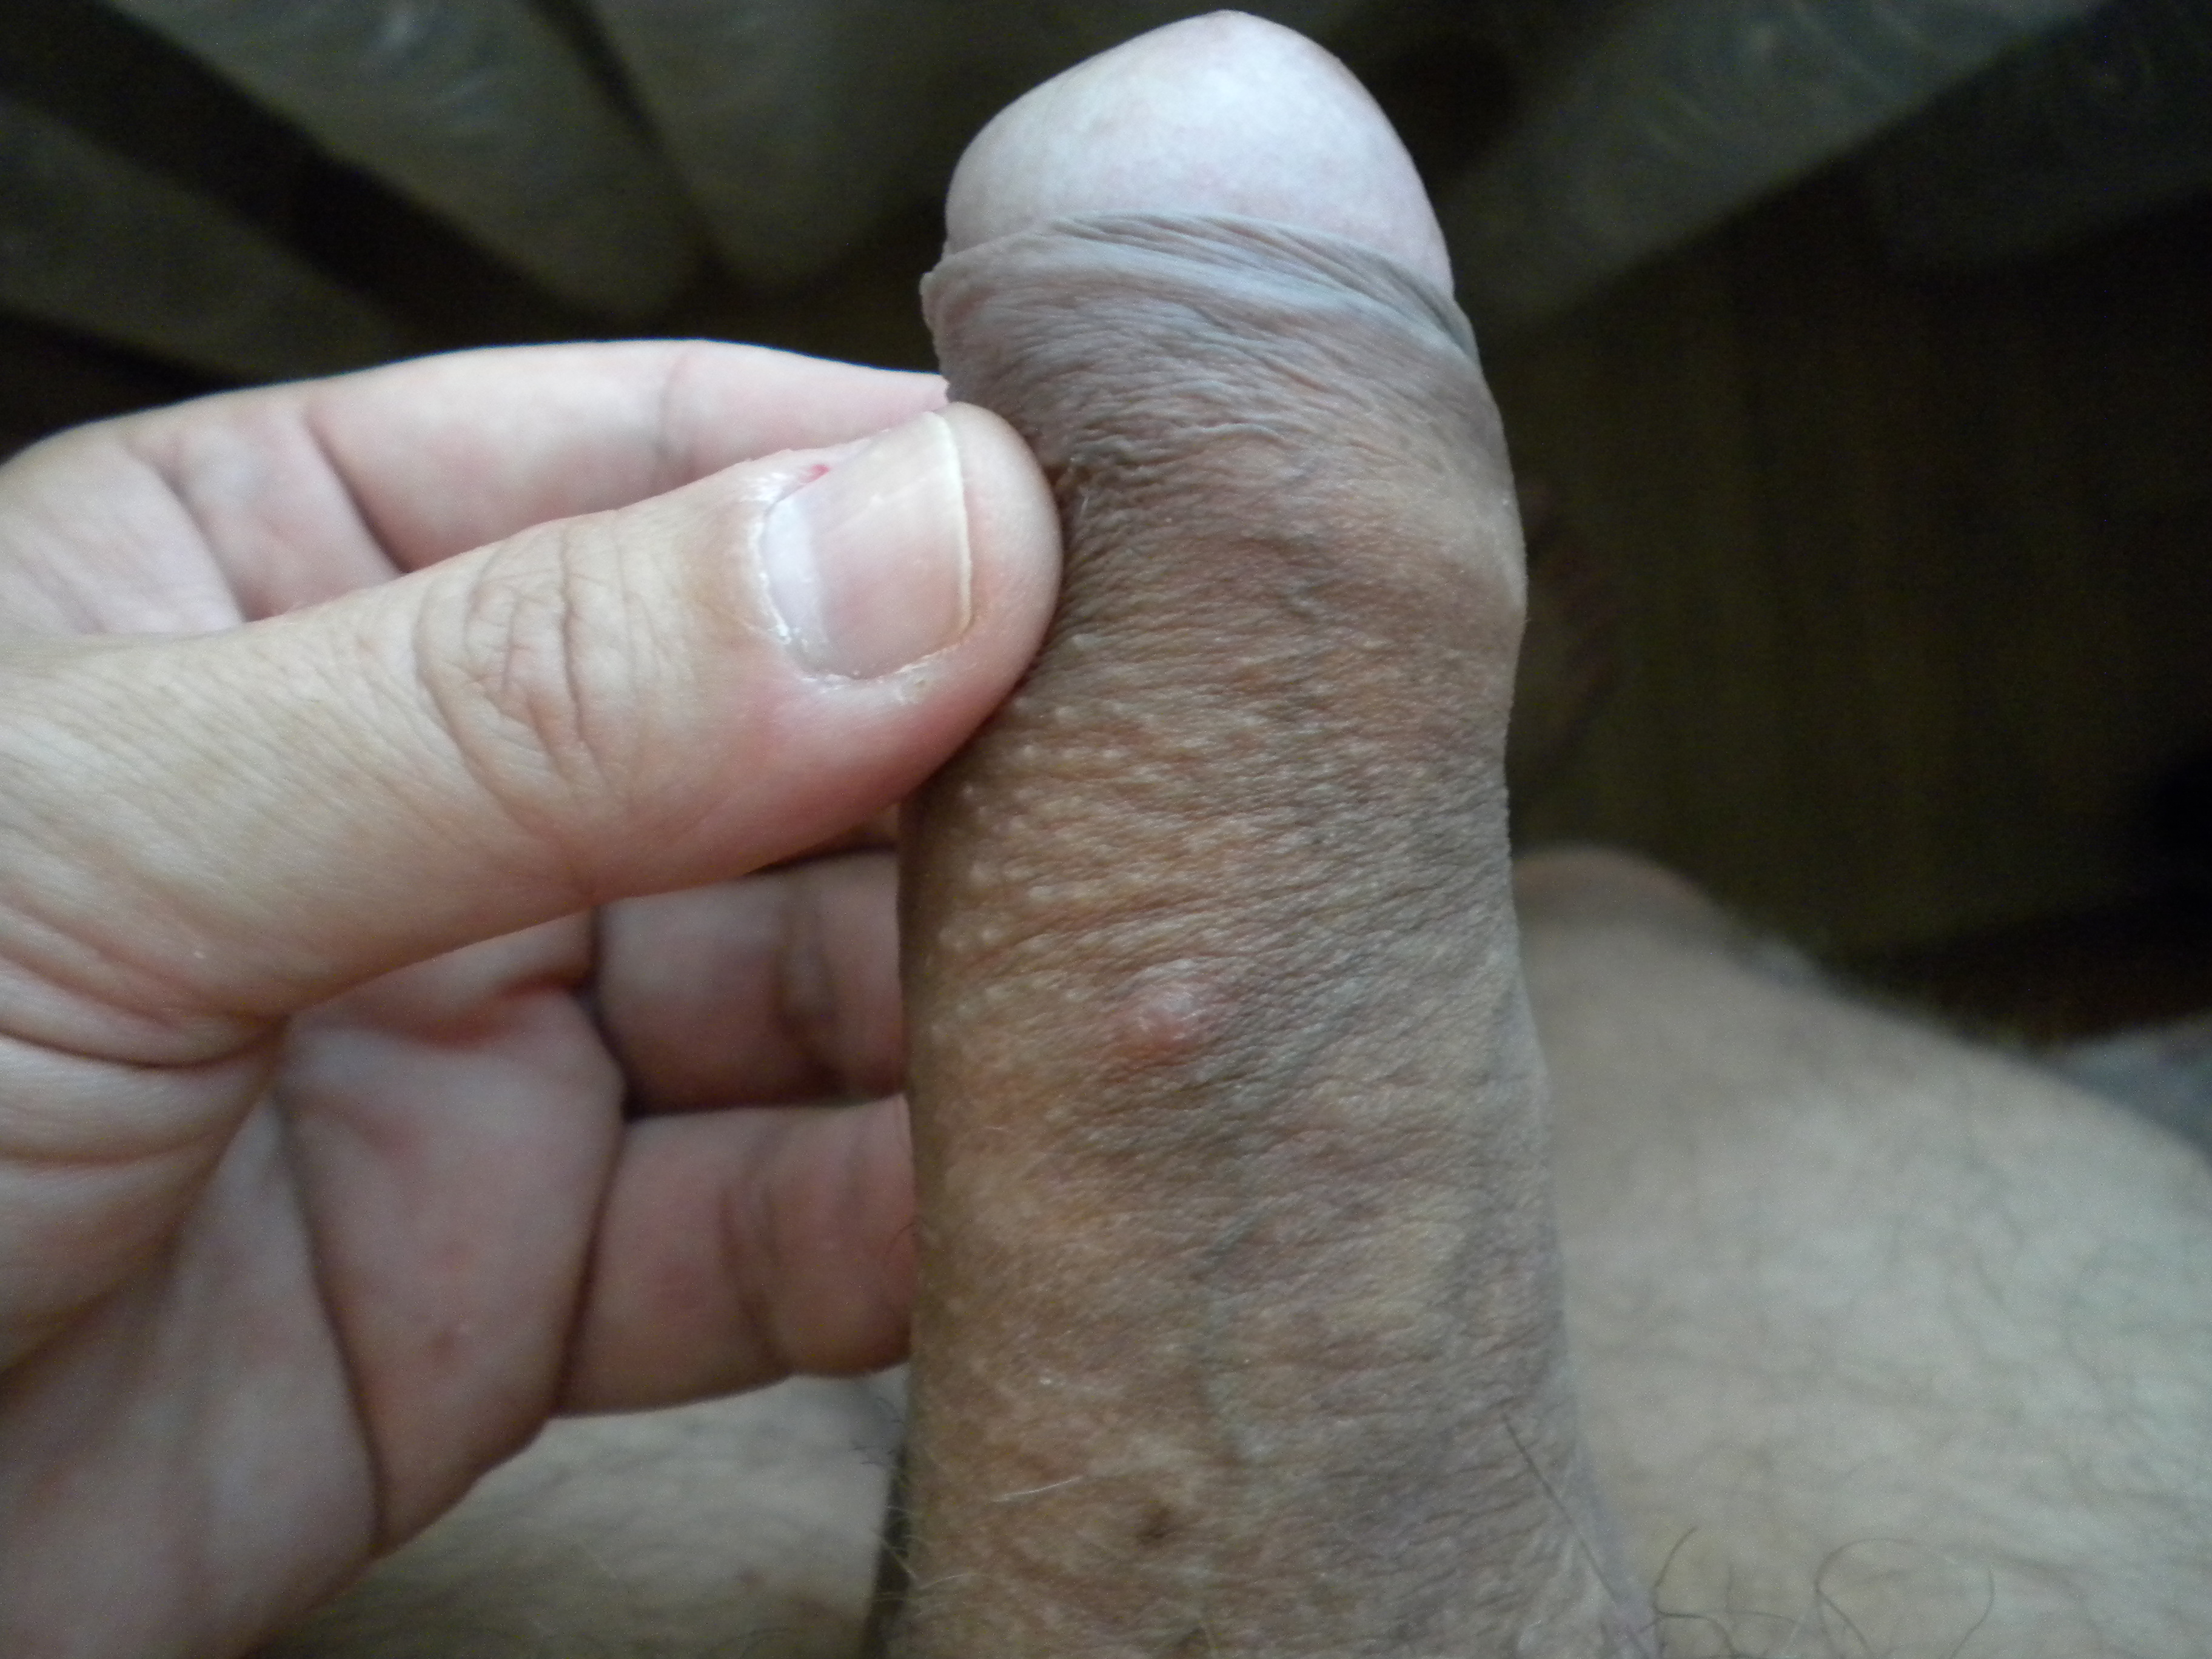 Picures Of Penis 103